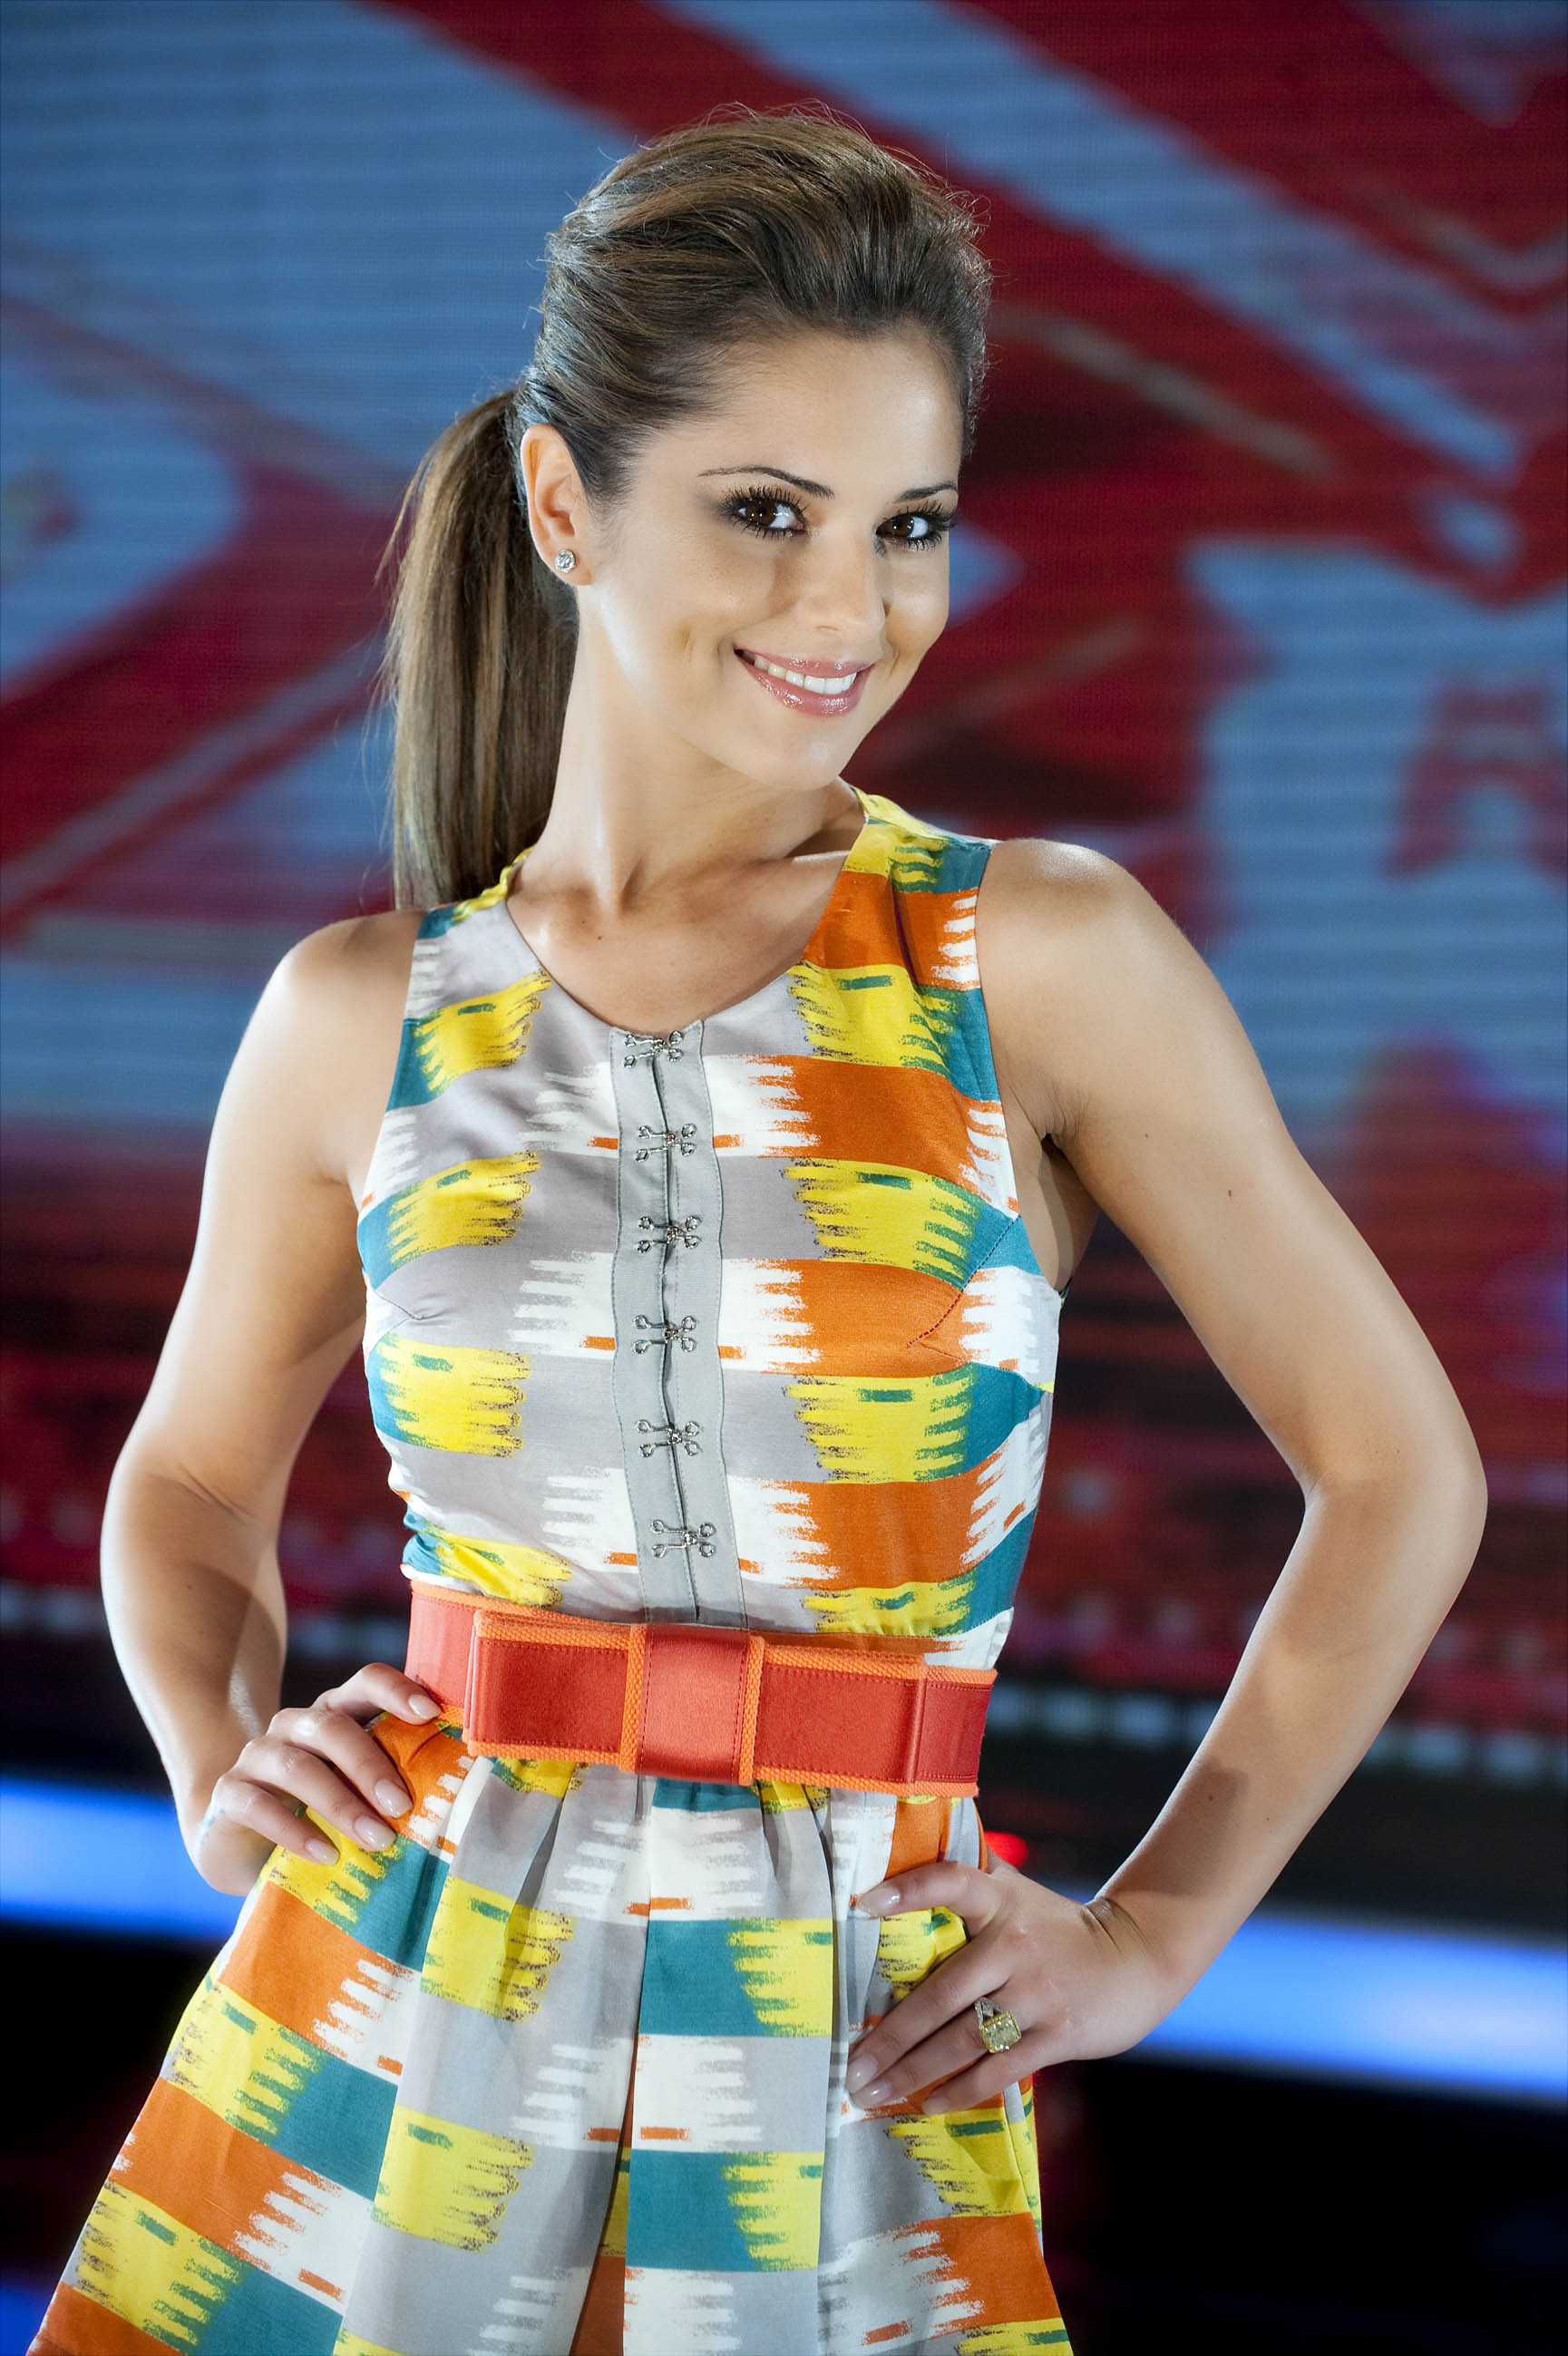 Cheryl offers support to gay X Factor hopefuls